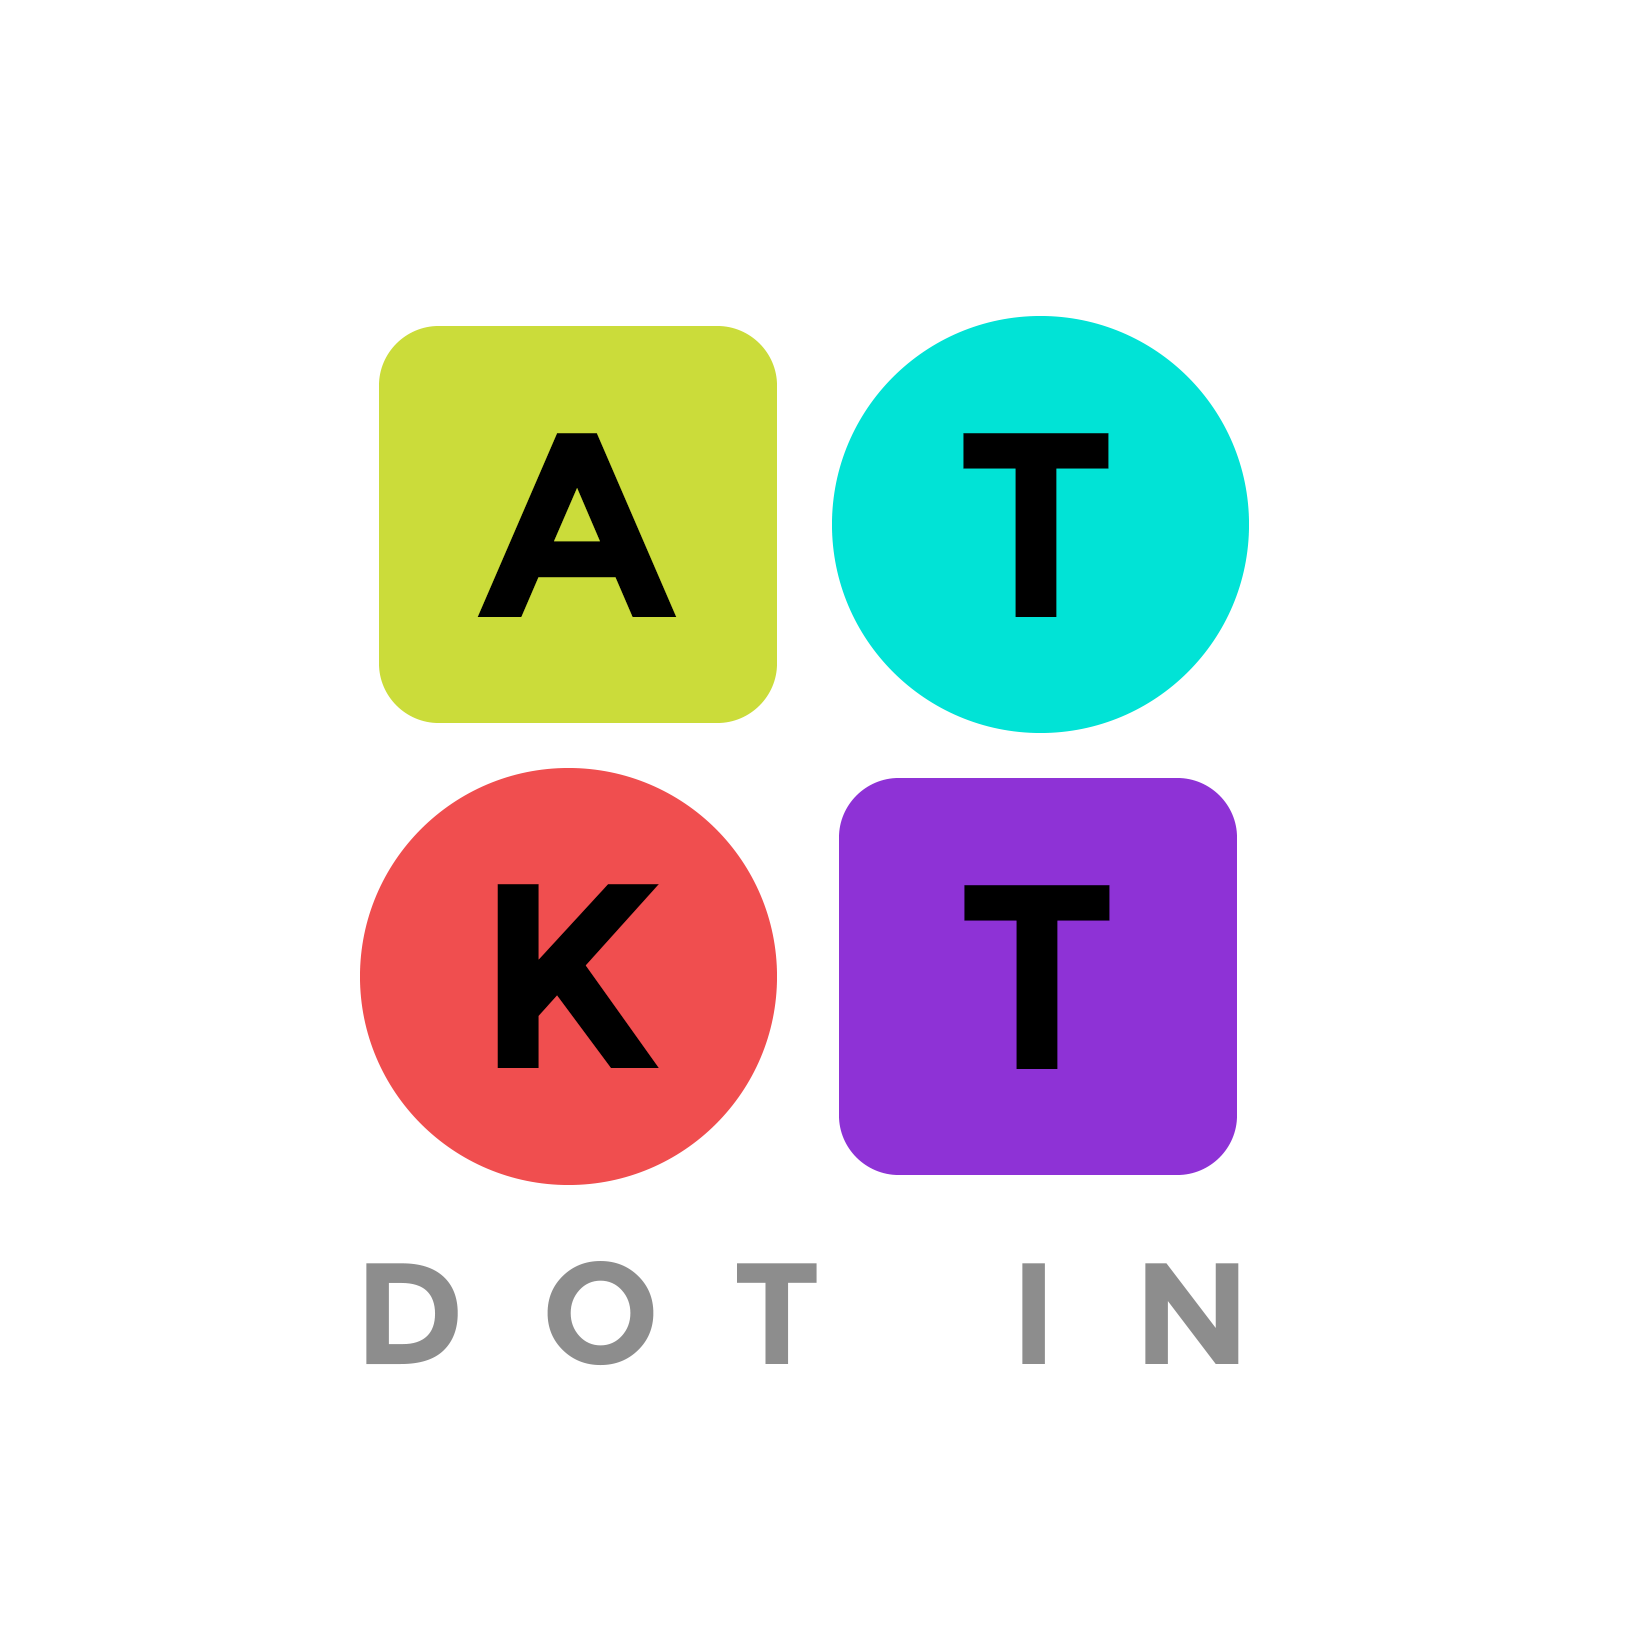 ATKT.in